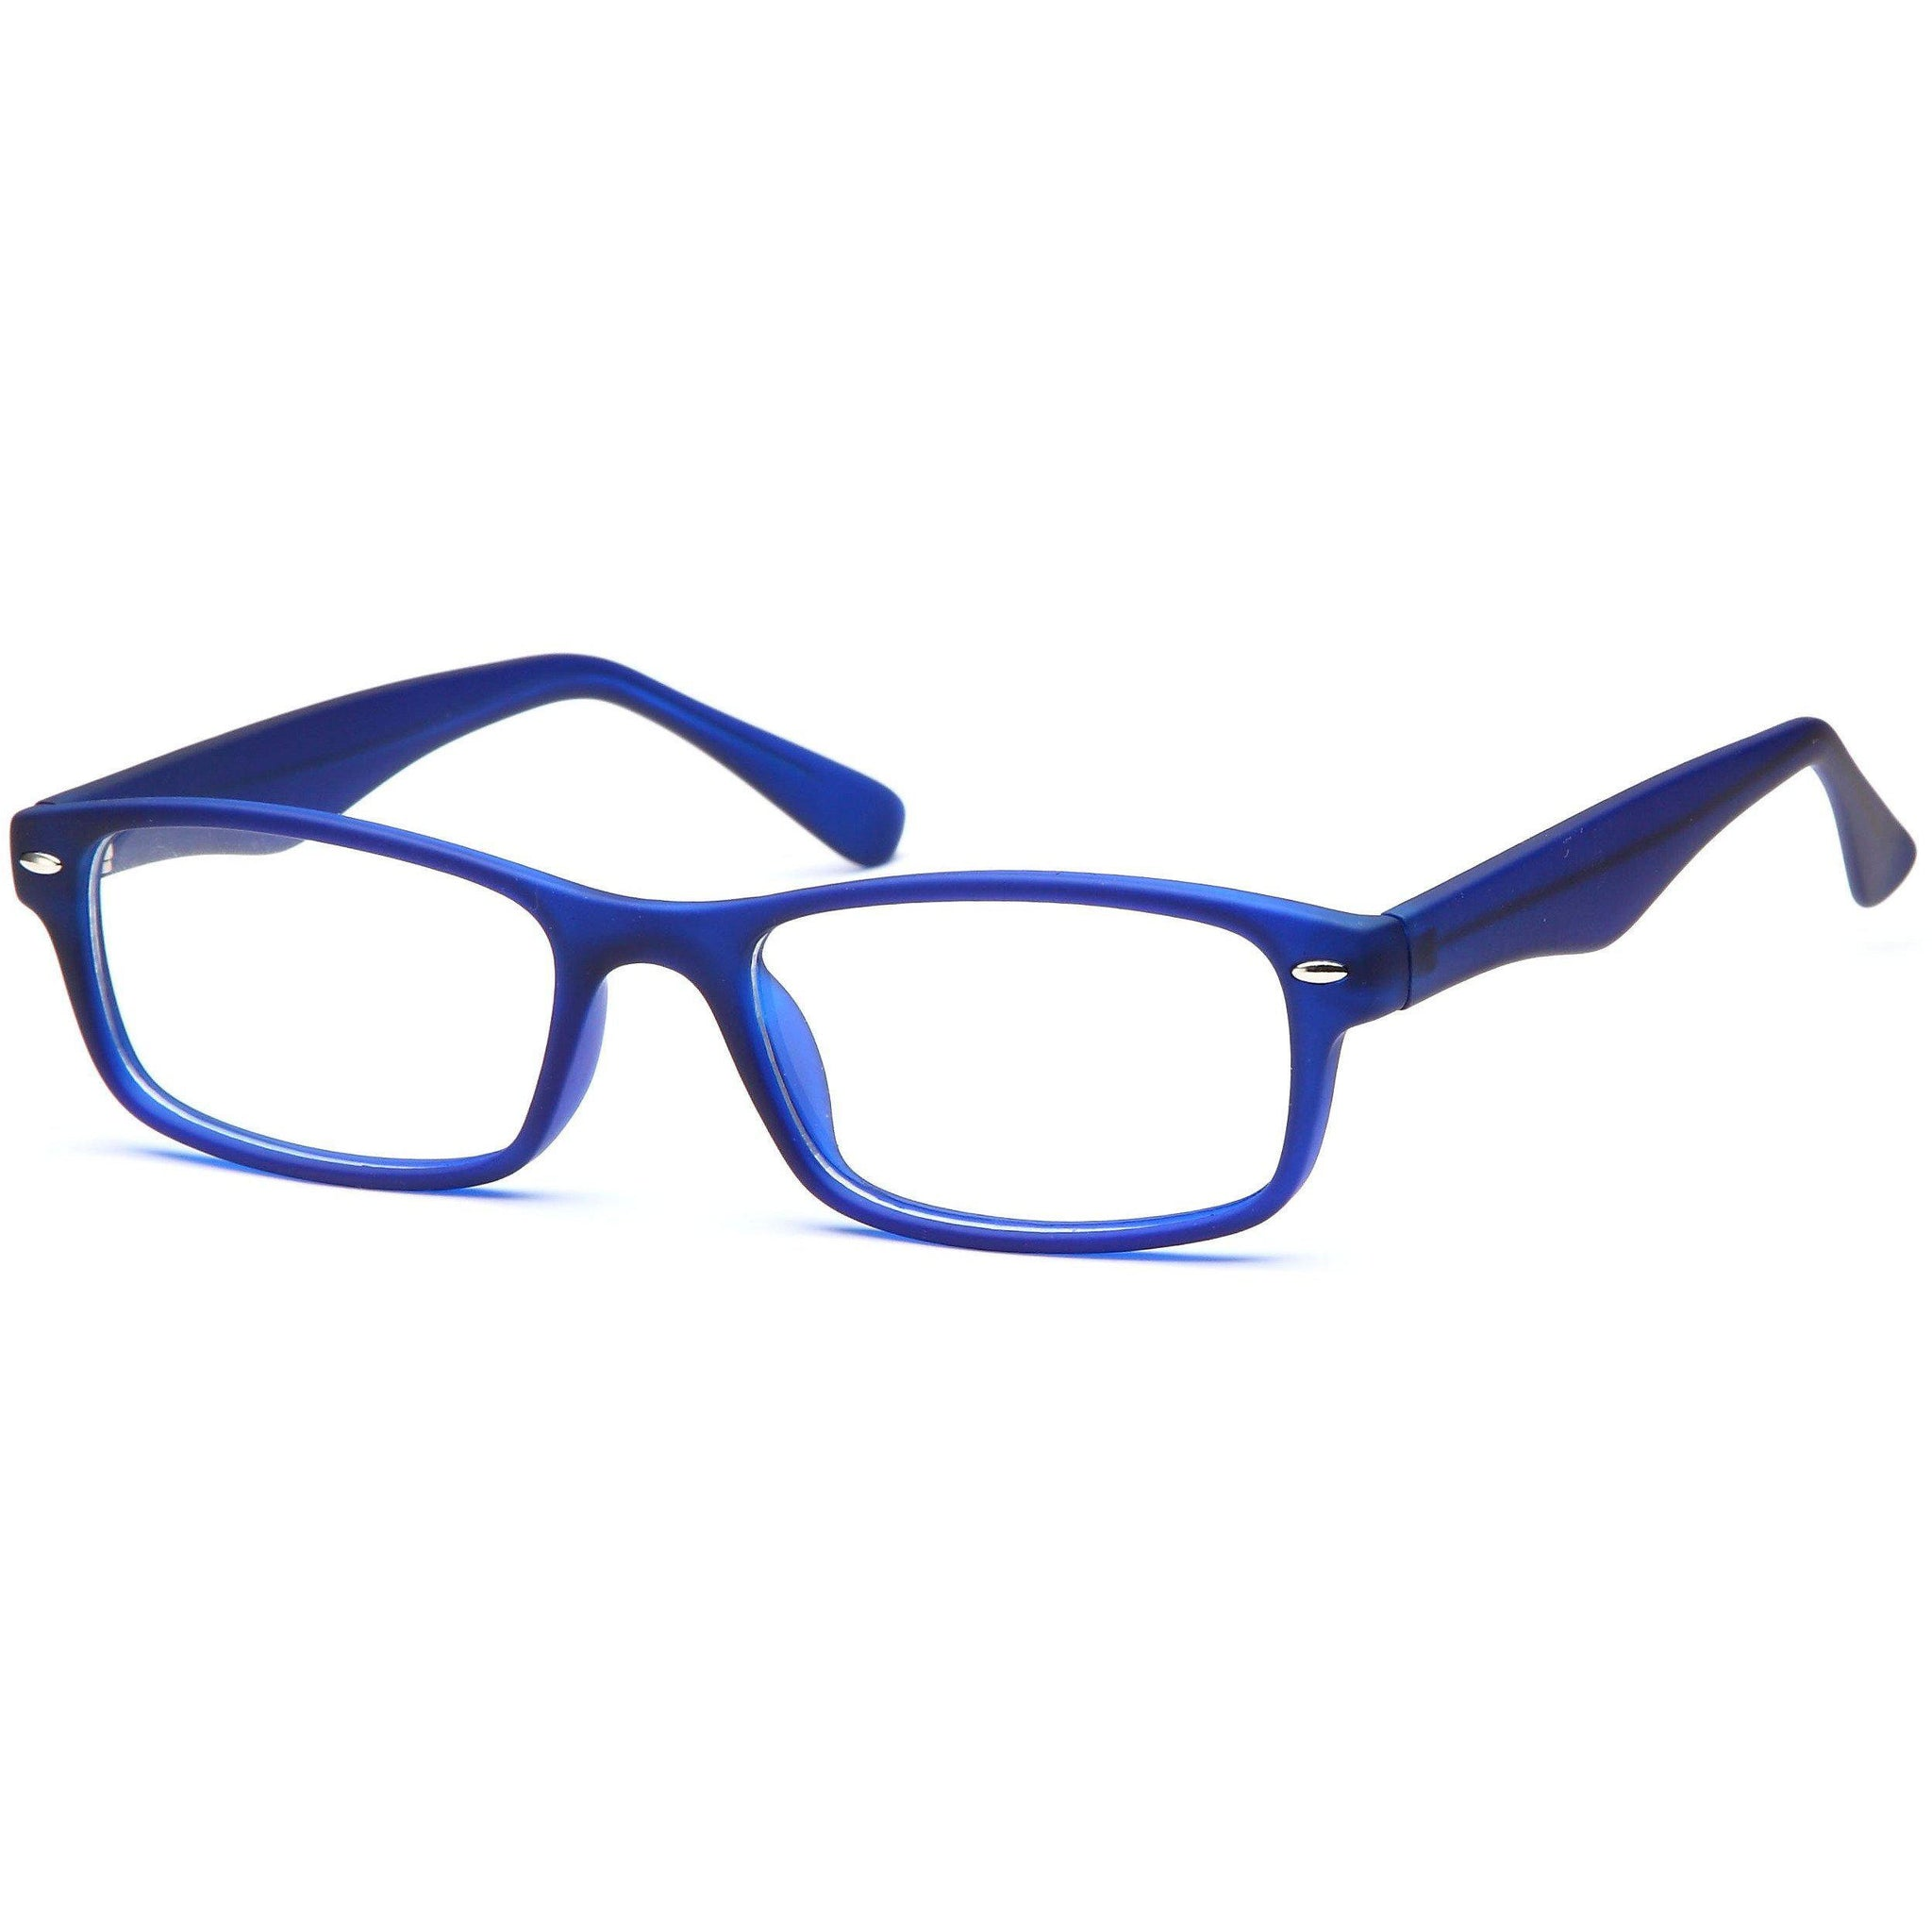 GEN Y Prescription Glasses UPLOAD Eyeglasses Frame